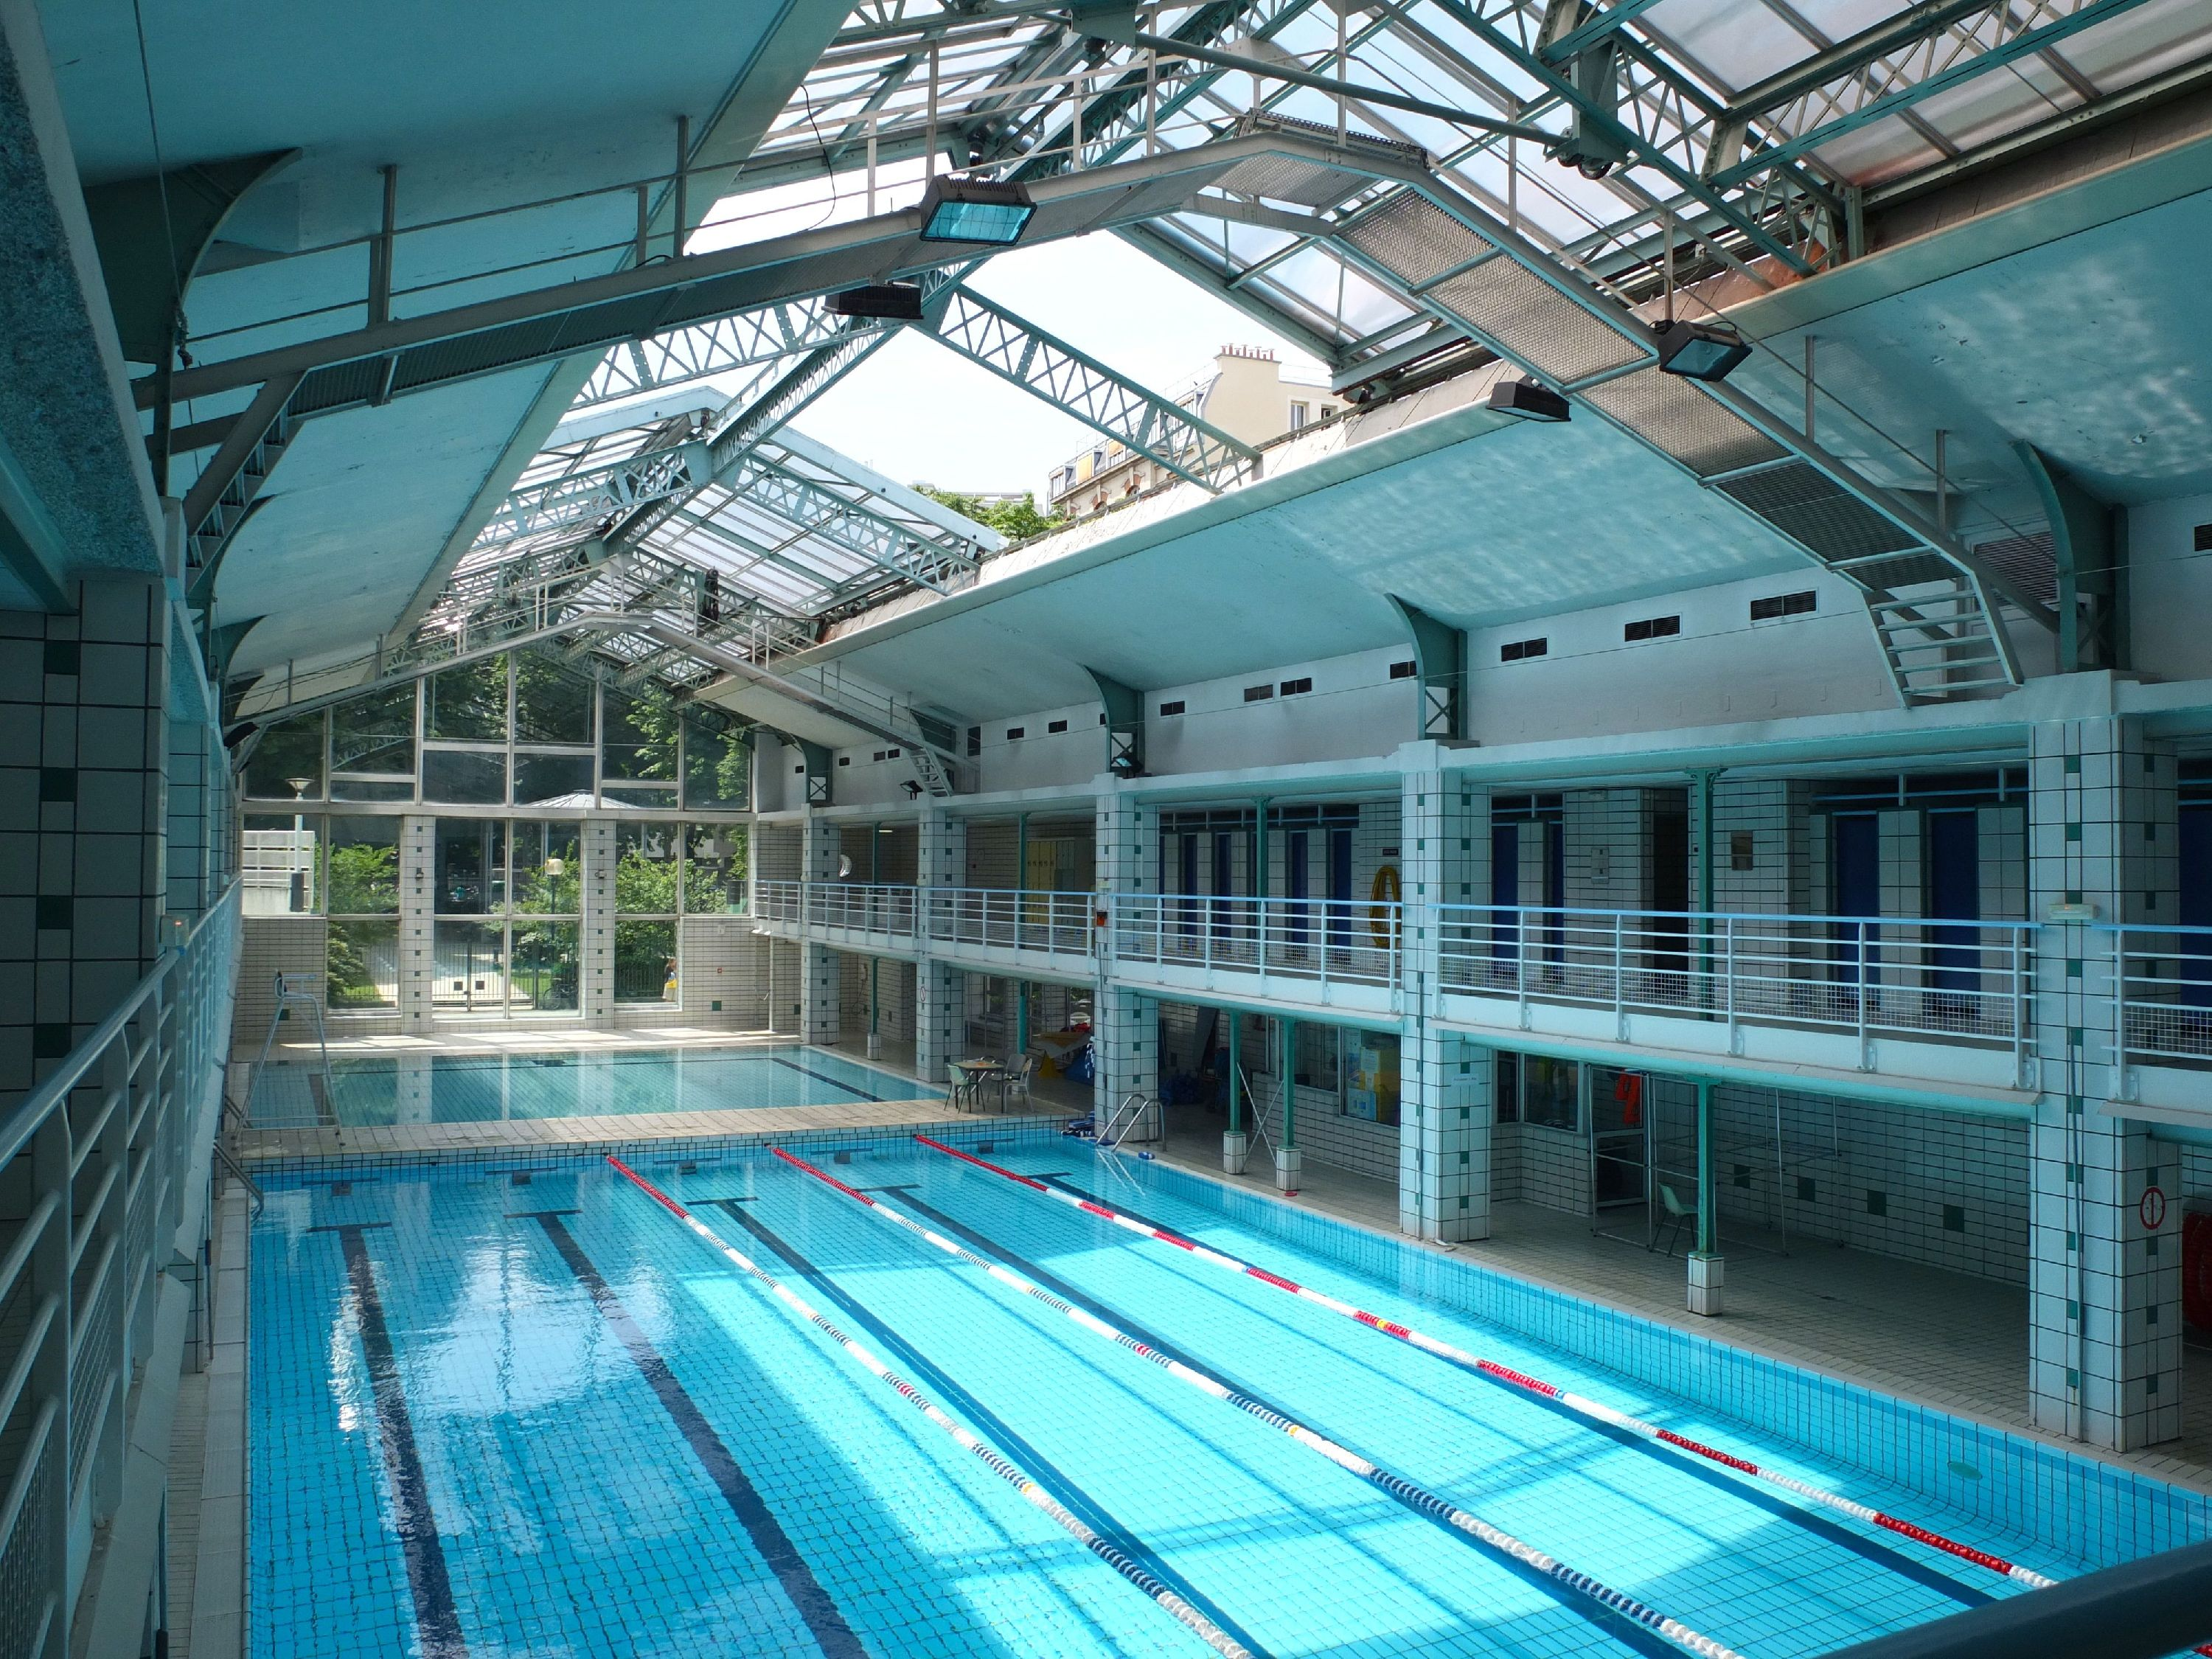 Piscines top 10 des piscines pour nager paris cet t - Piscine paris 8eme arrondissement ...